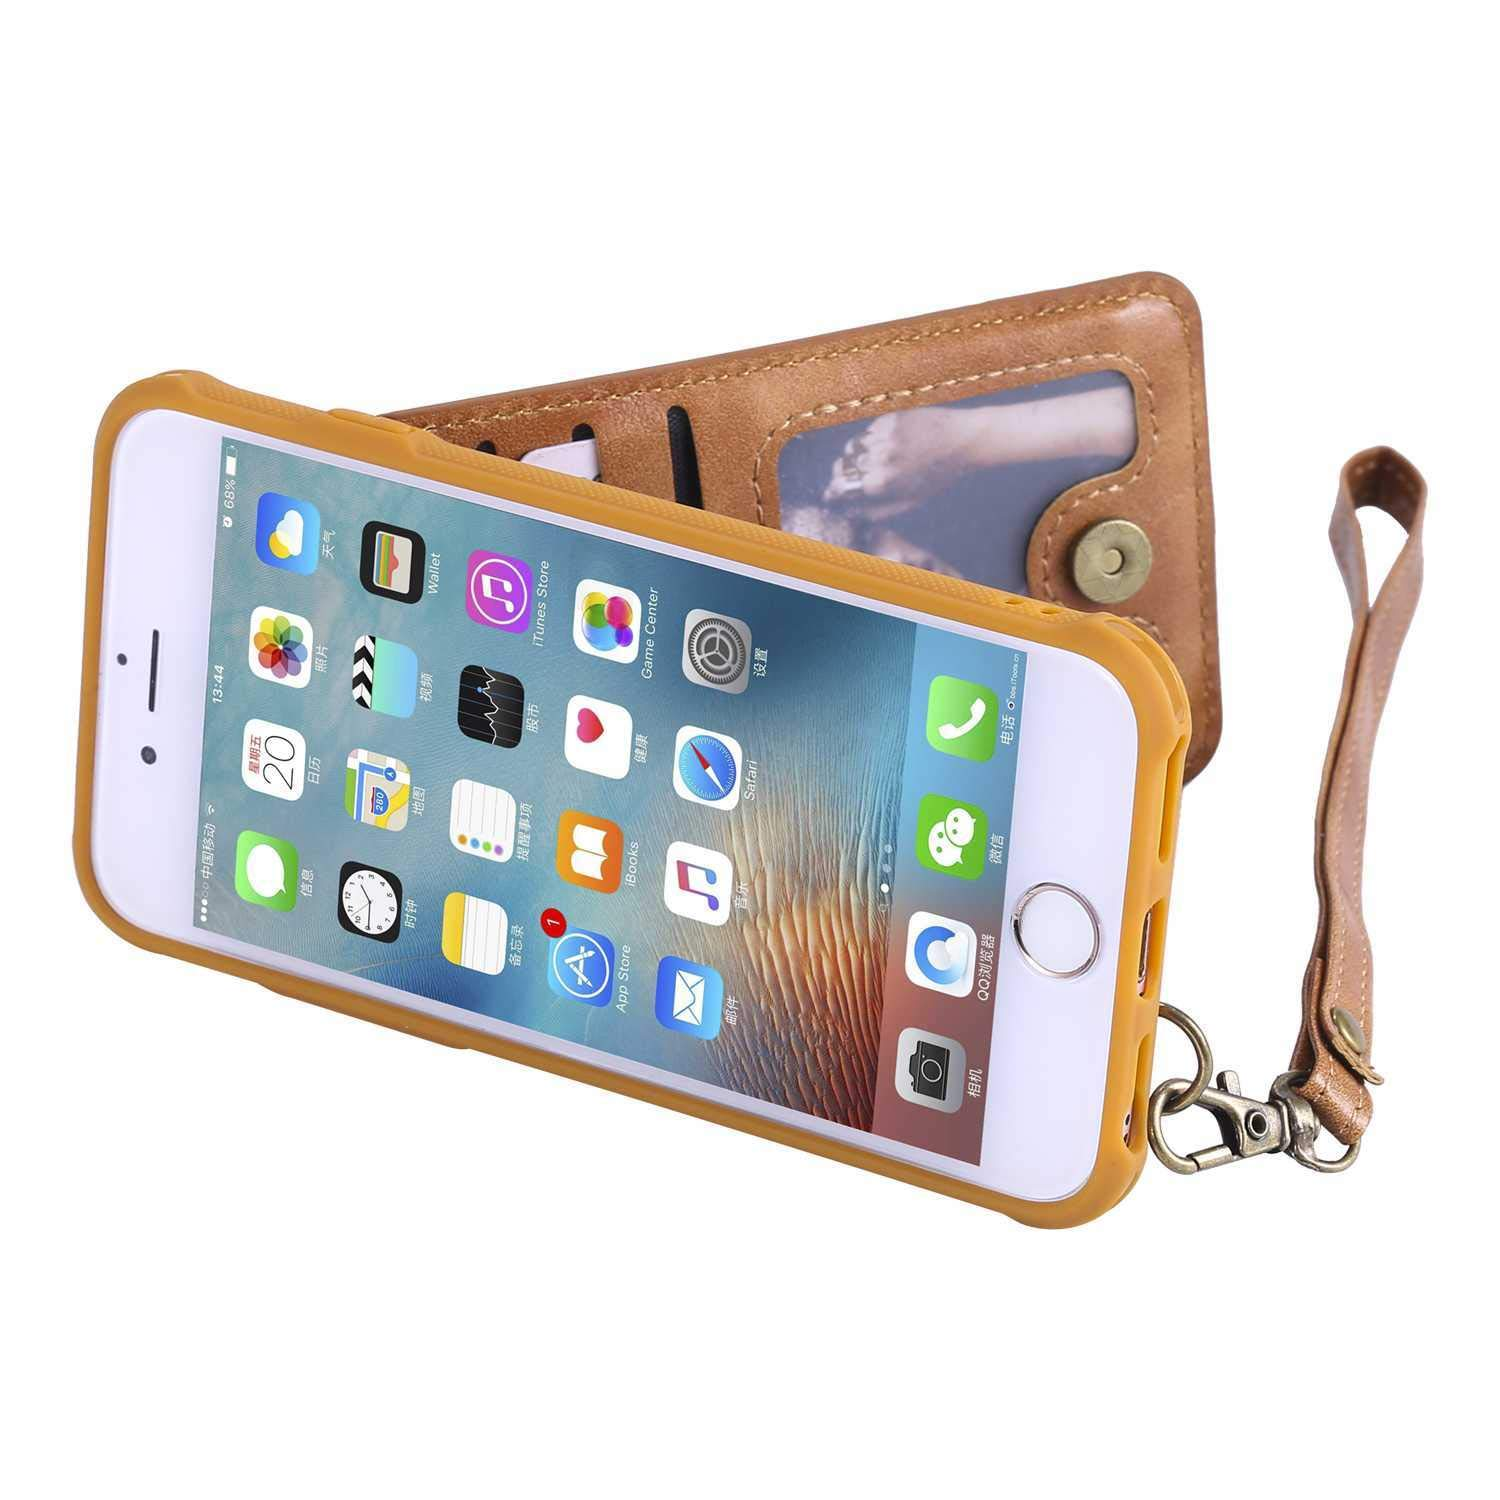 PU Leather Wallet Case Blue CUSKING iPhone 6 // iPhone 6s Case Premium Magnetic Stand Bumper Case with Card Holder and Hand Strap for Apple iPhone 6 // iPhone 6s